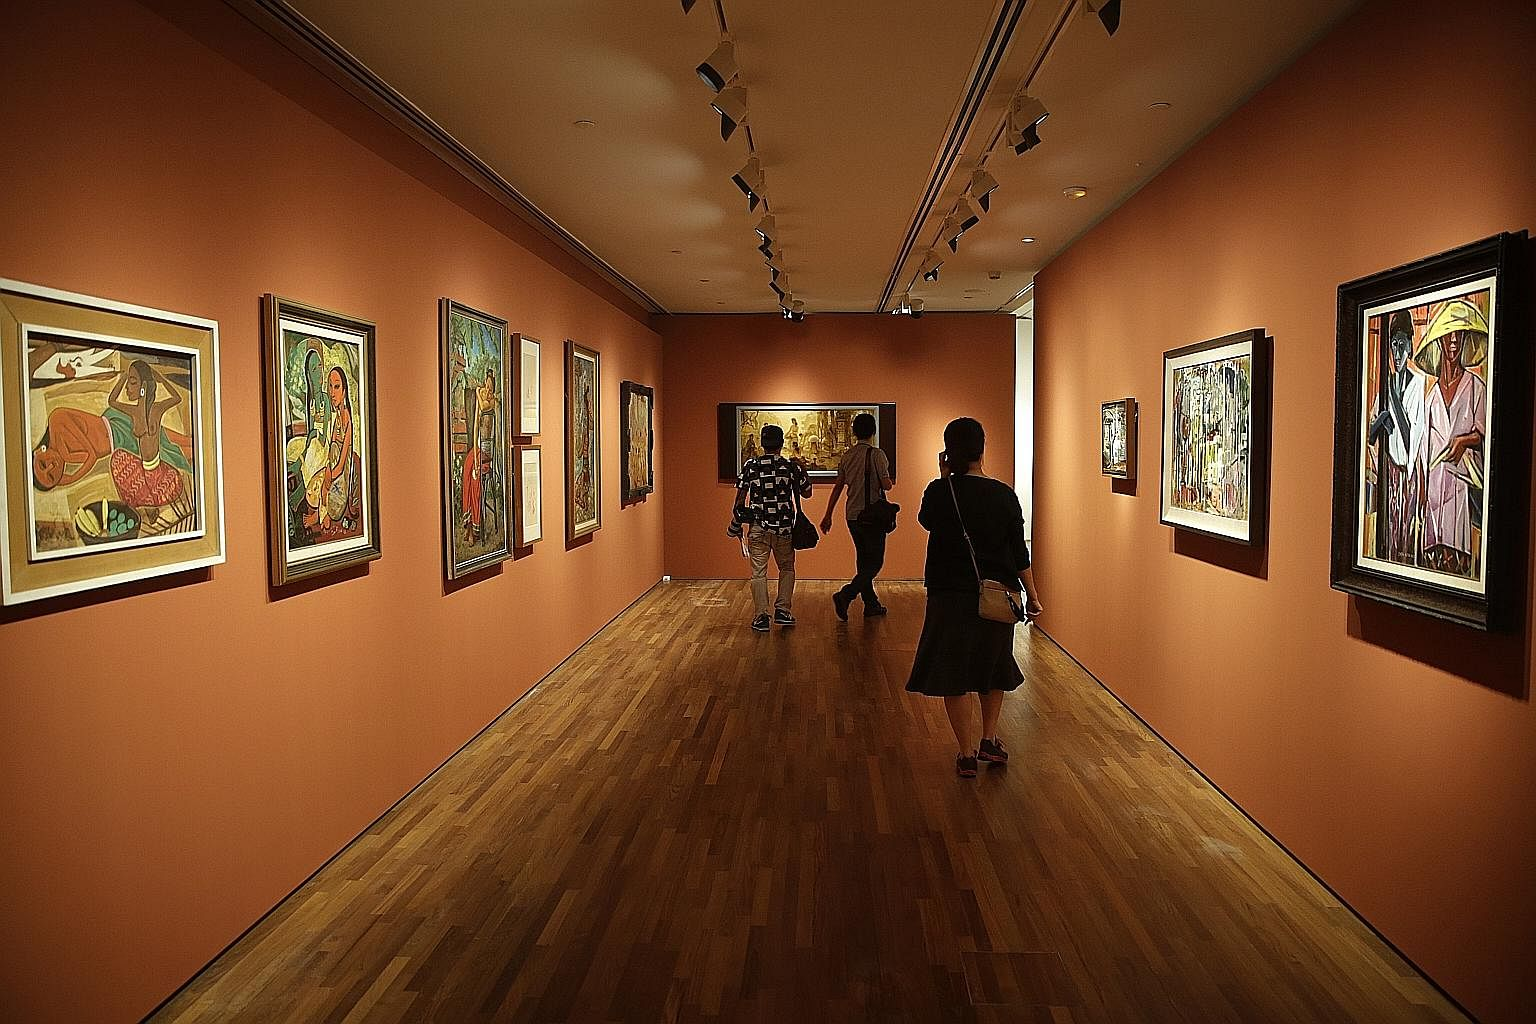 While museums here still have some way to go in growing public appreciation of culture and the arts, their major makeover in recent years has placed them on a firm footing for the next lap.